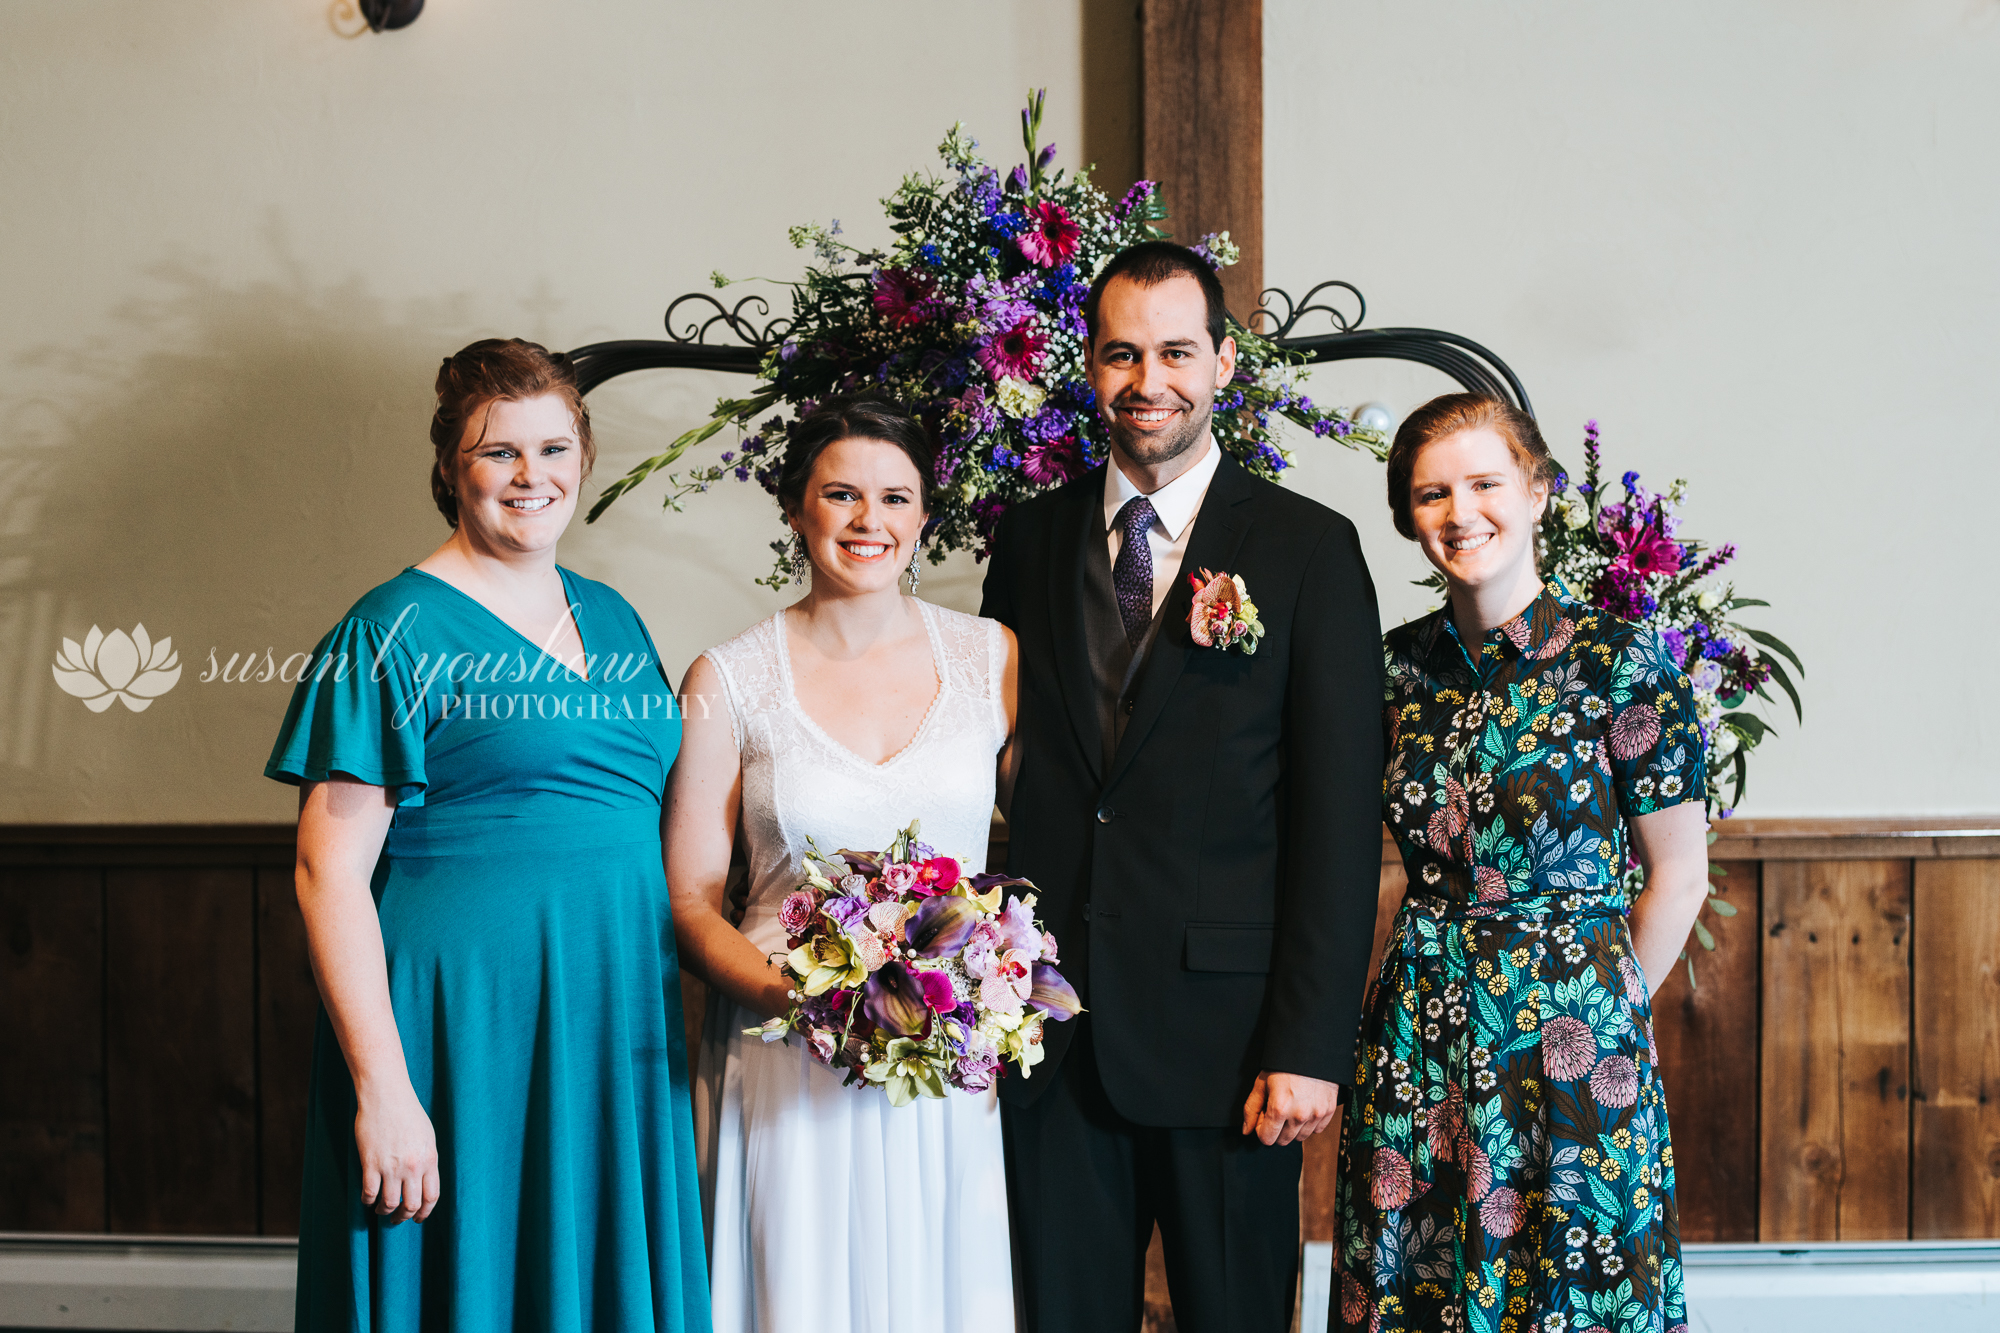 Adena and  Erik Wedding 05-17-2019 SLY Photography-49.jpg